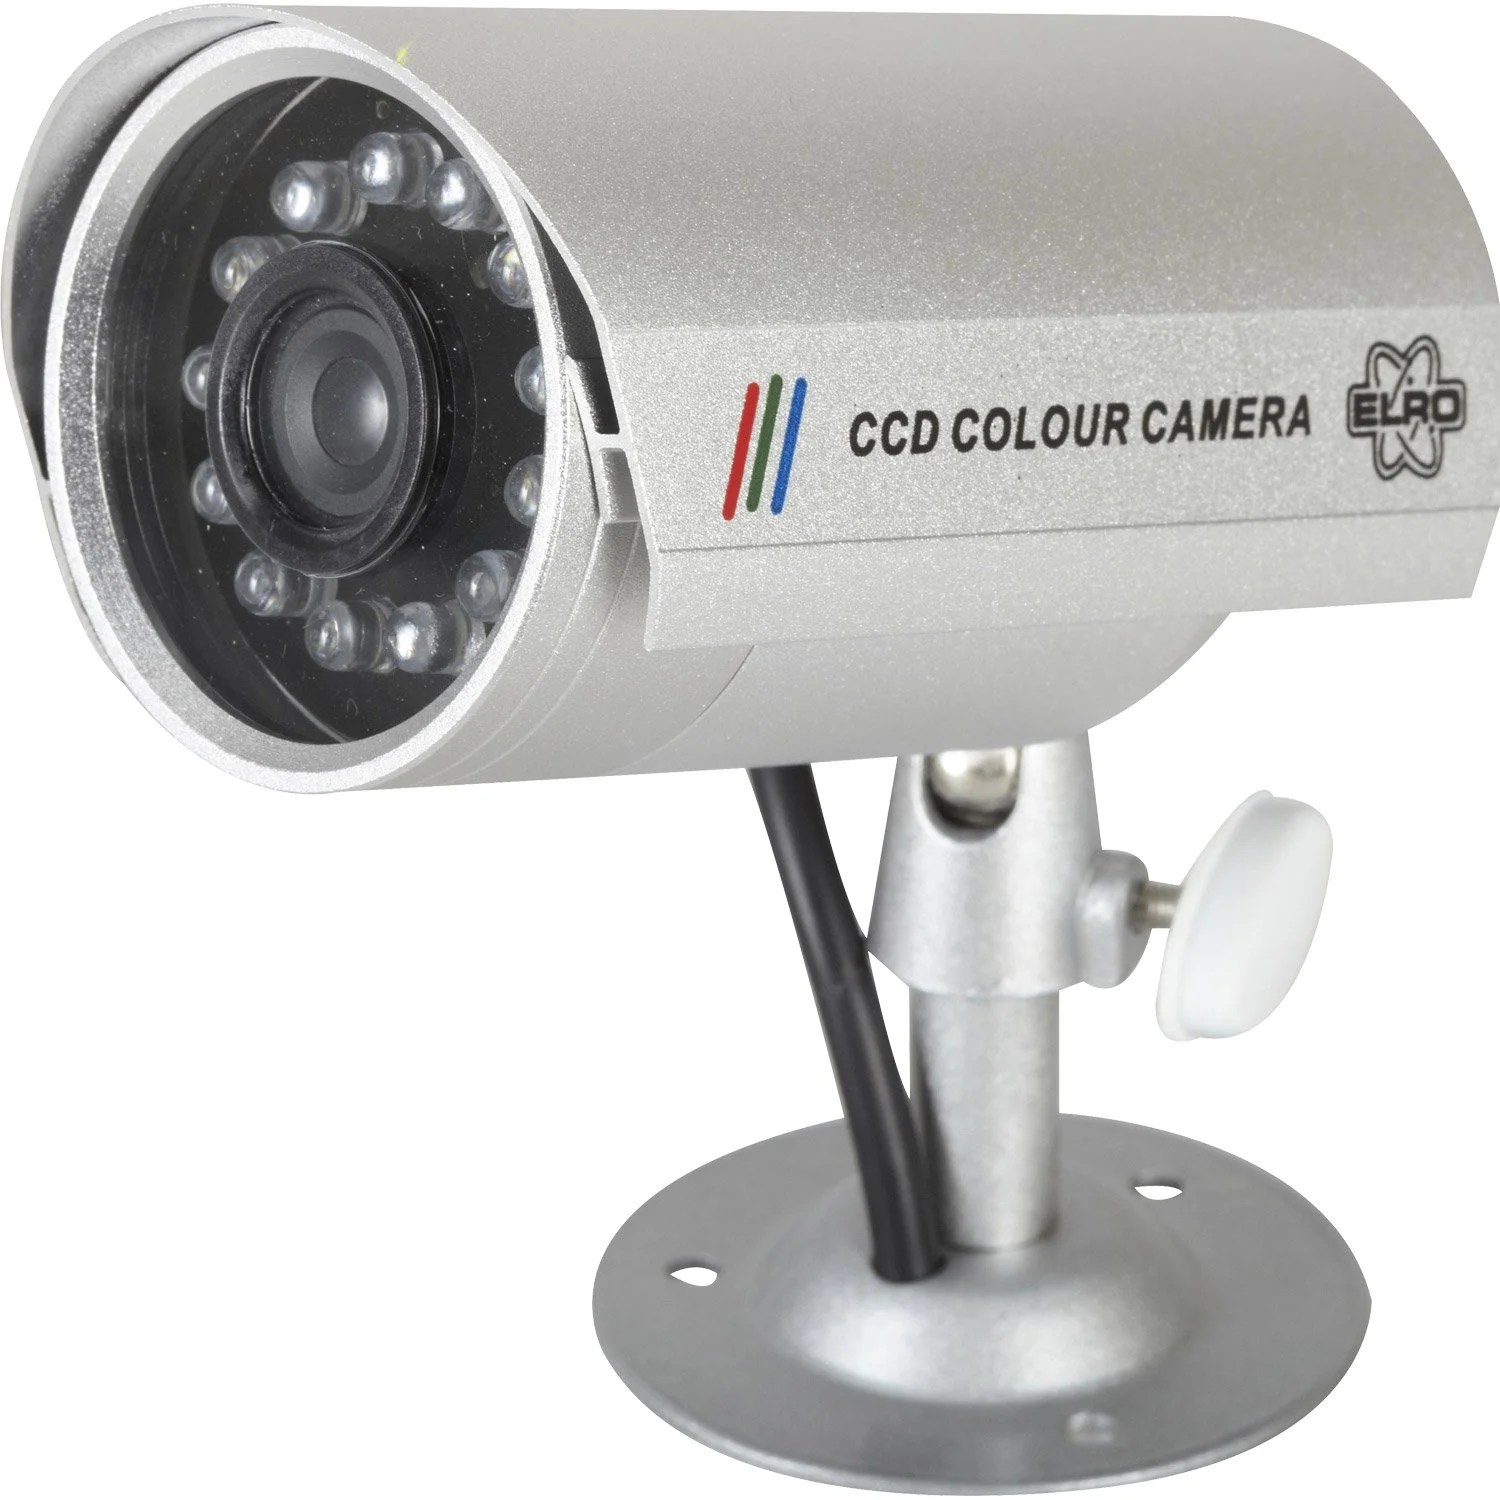 Kit Camera De Surveillance Exterieur Leroy Merlin Video Surveillance Factice Ziloo Fr